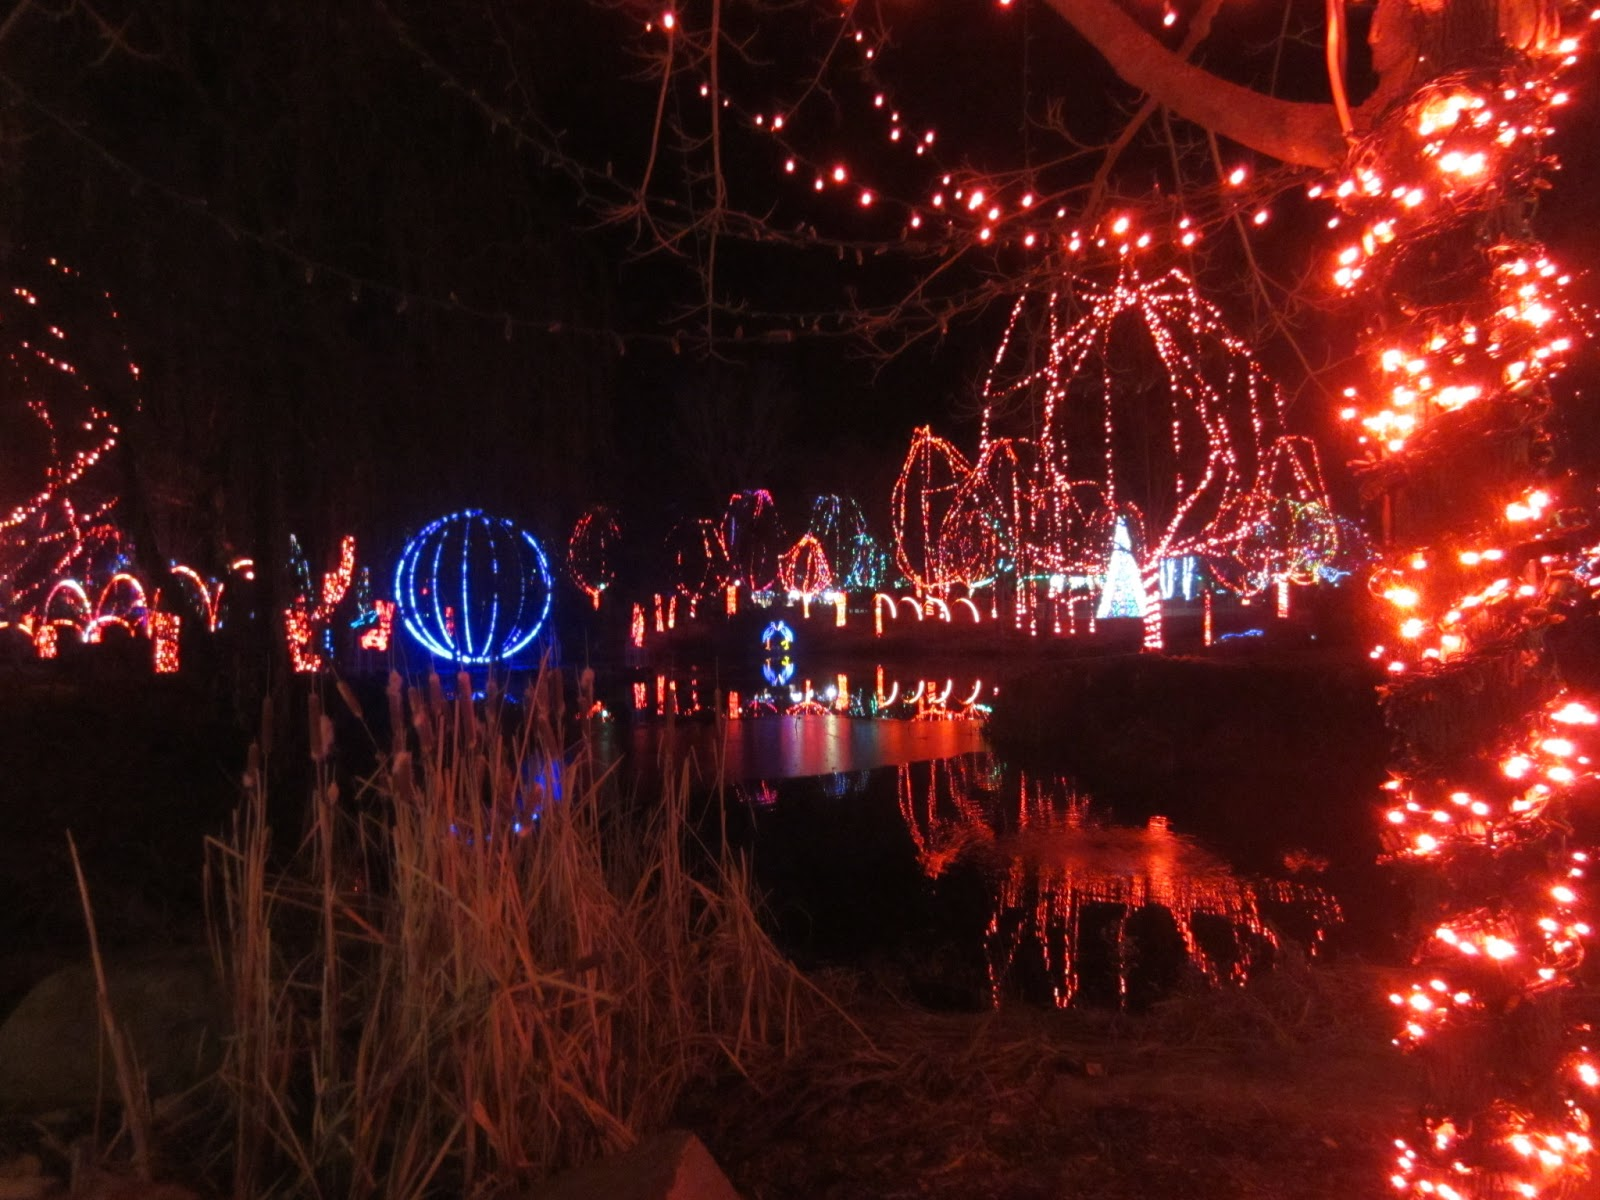 Violet S Silver Lining Things To Do In Ohio Wildlights